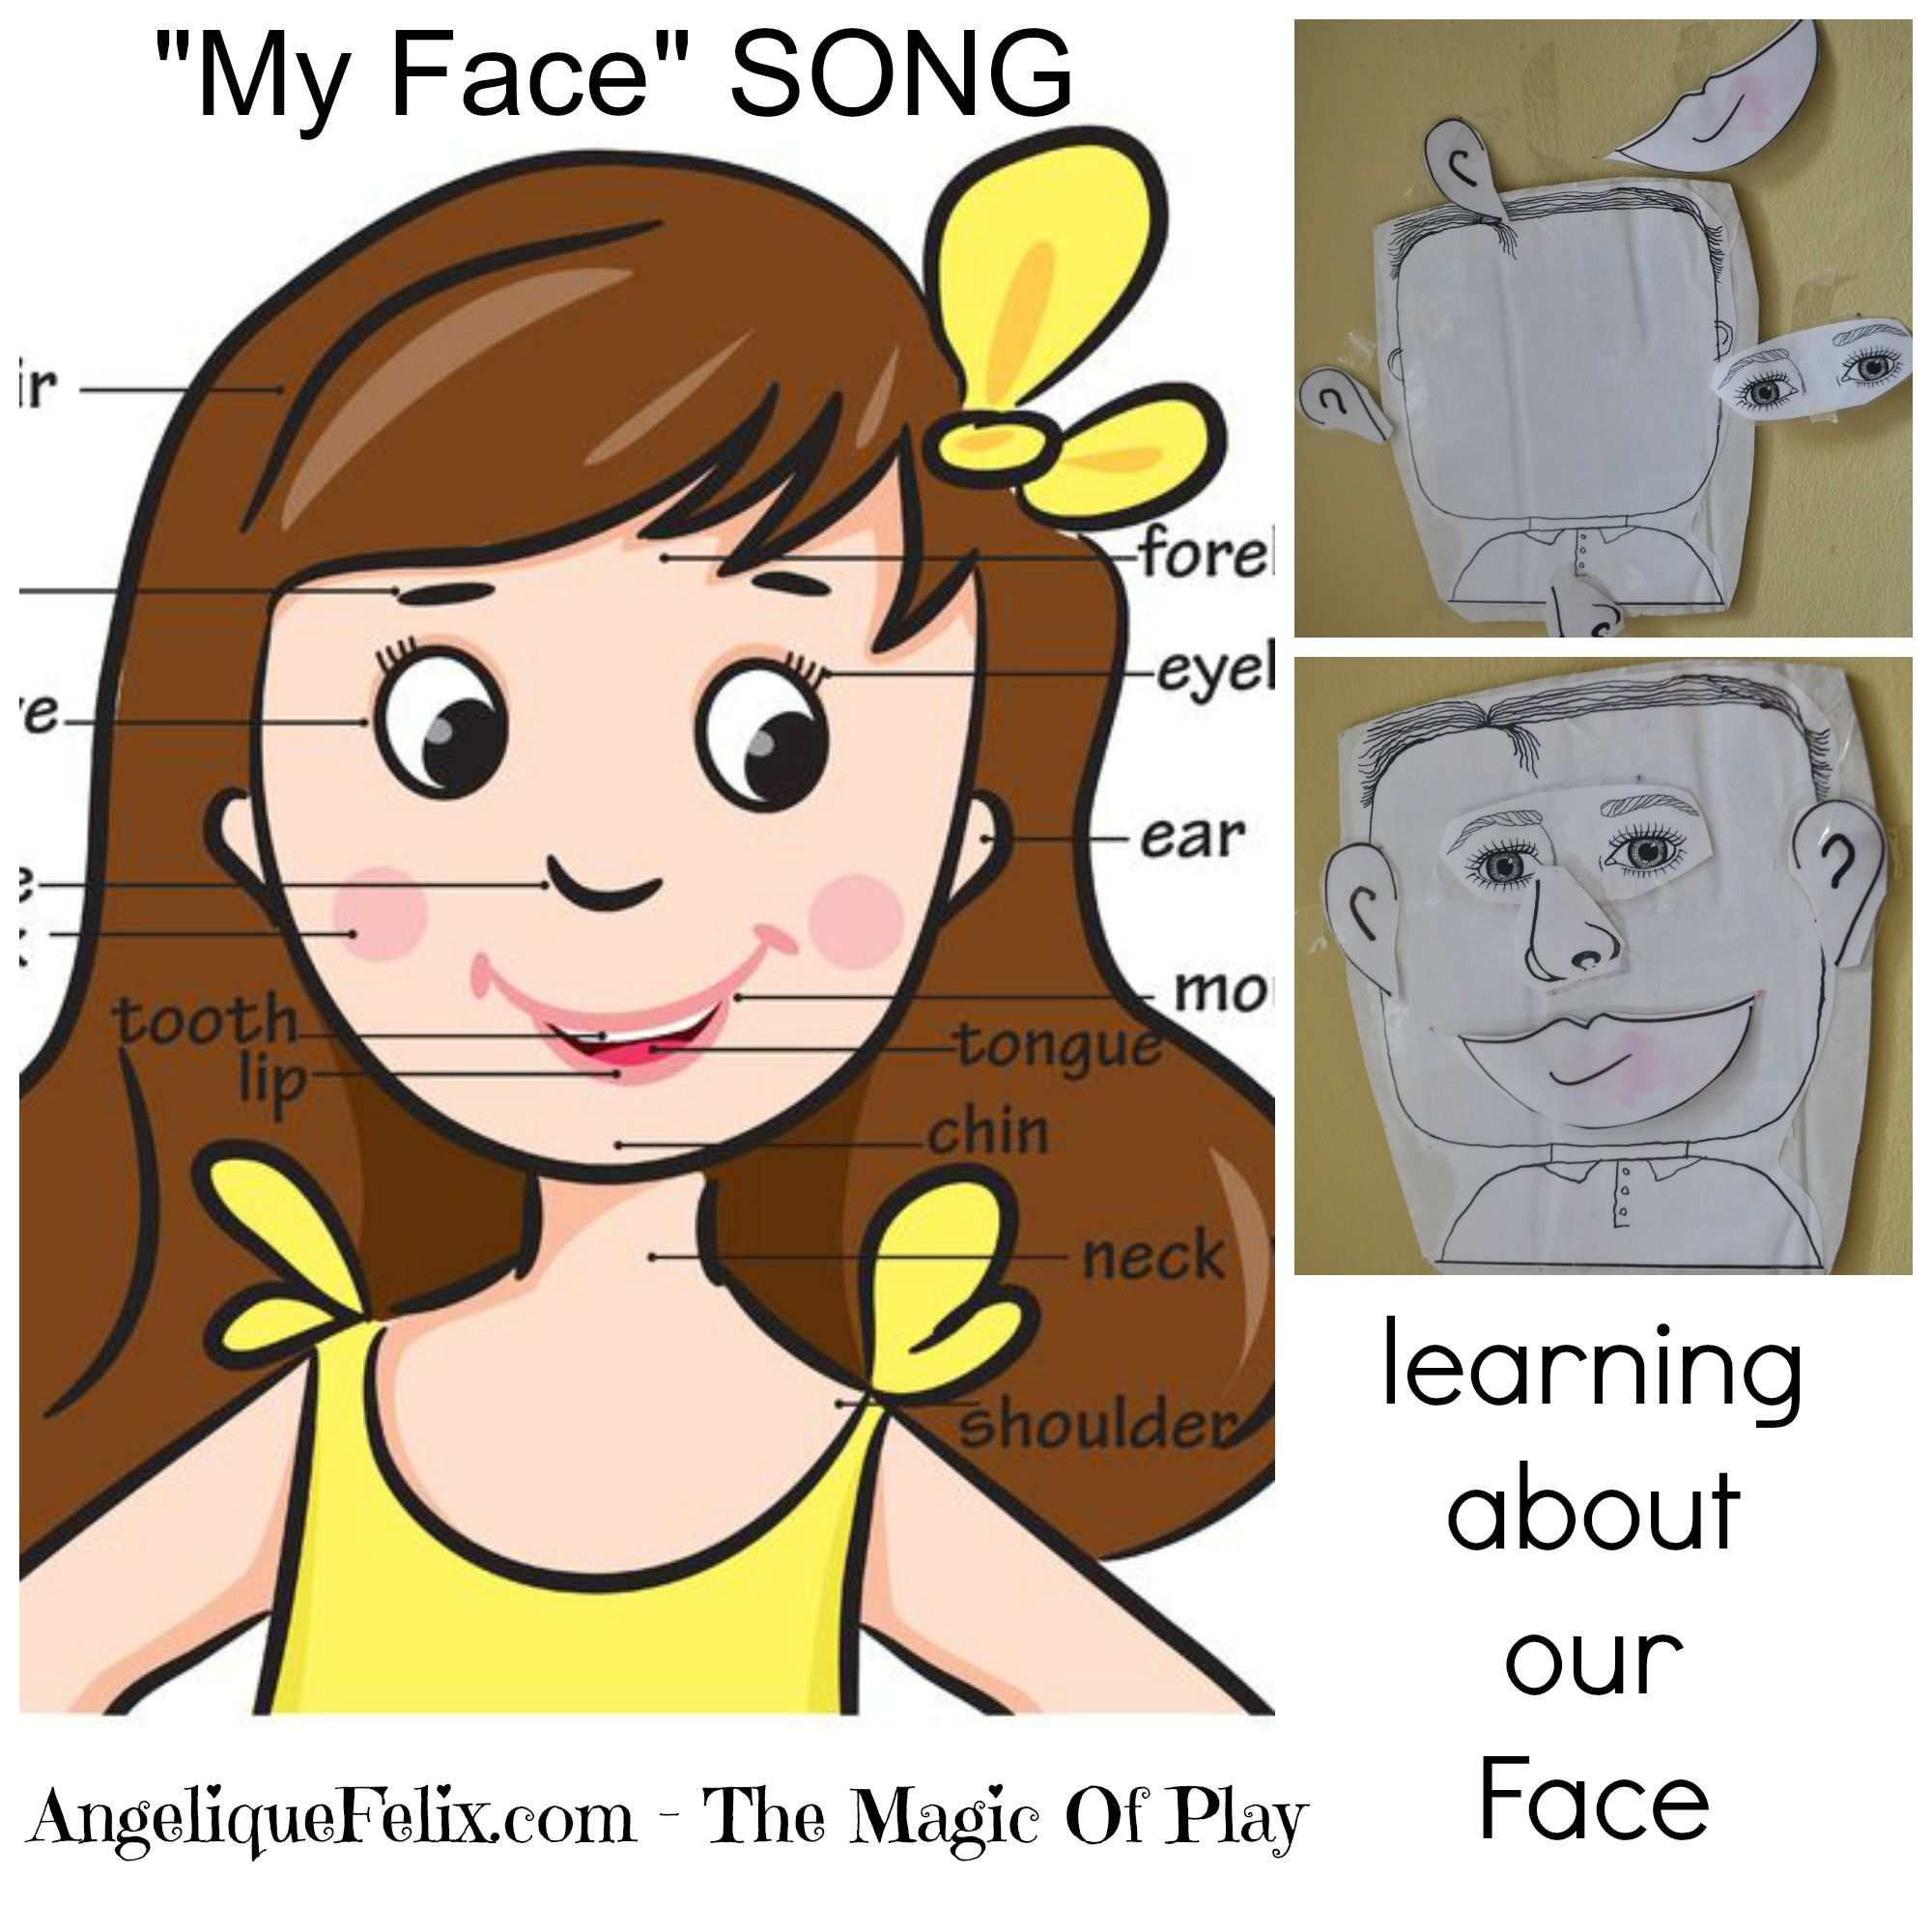 Super Simple Song About The Face Perfect For Preschool You Can Find Some Ideas For Activities